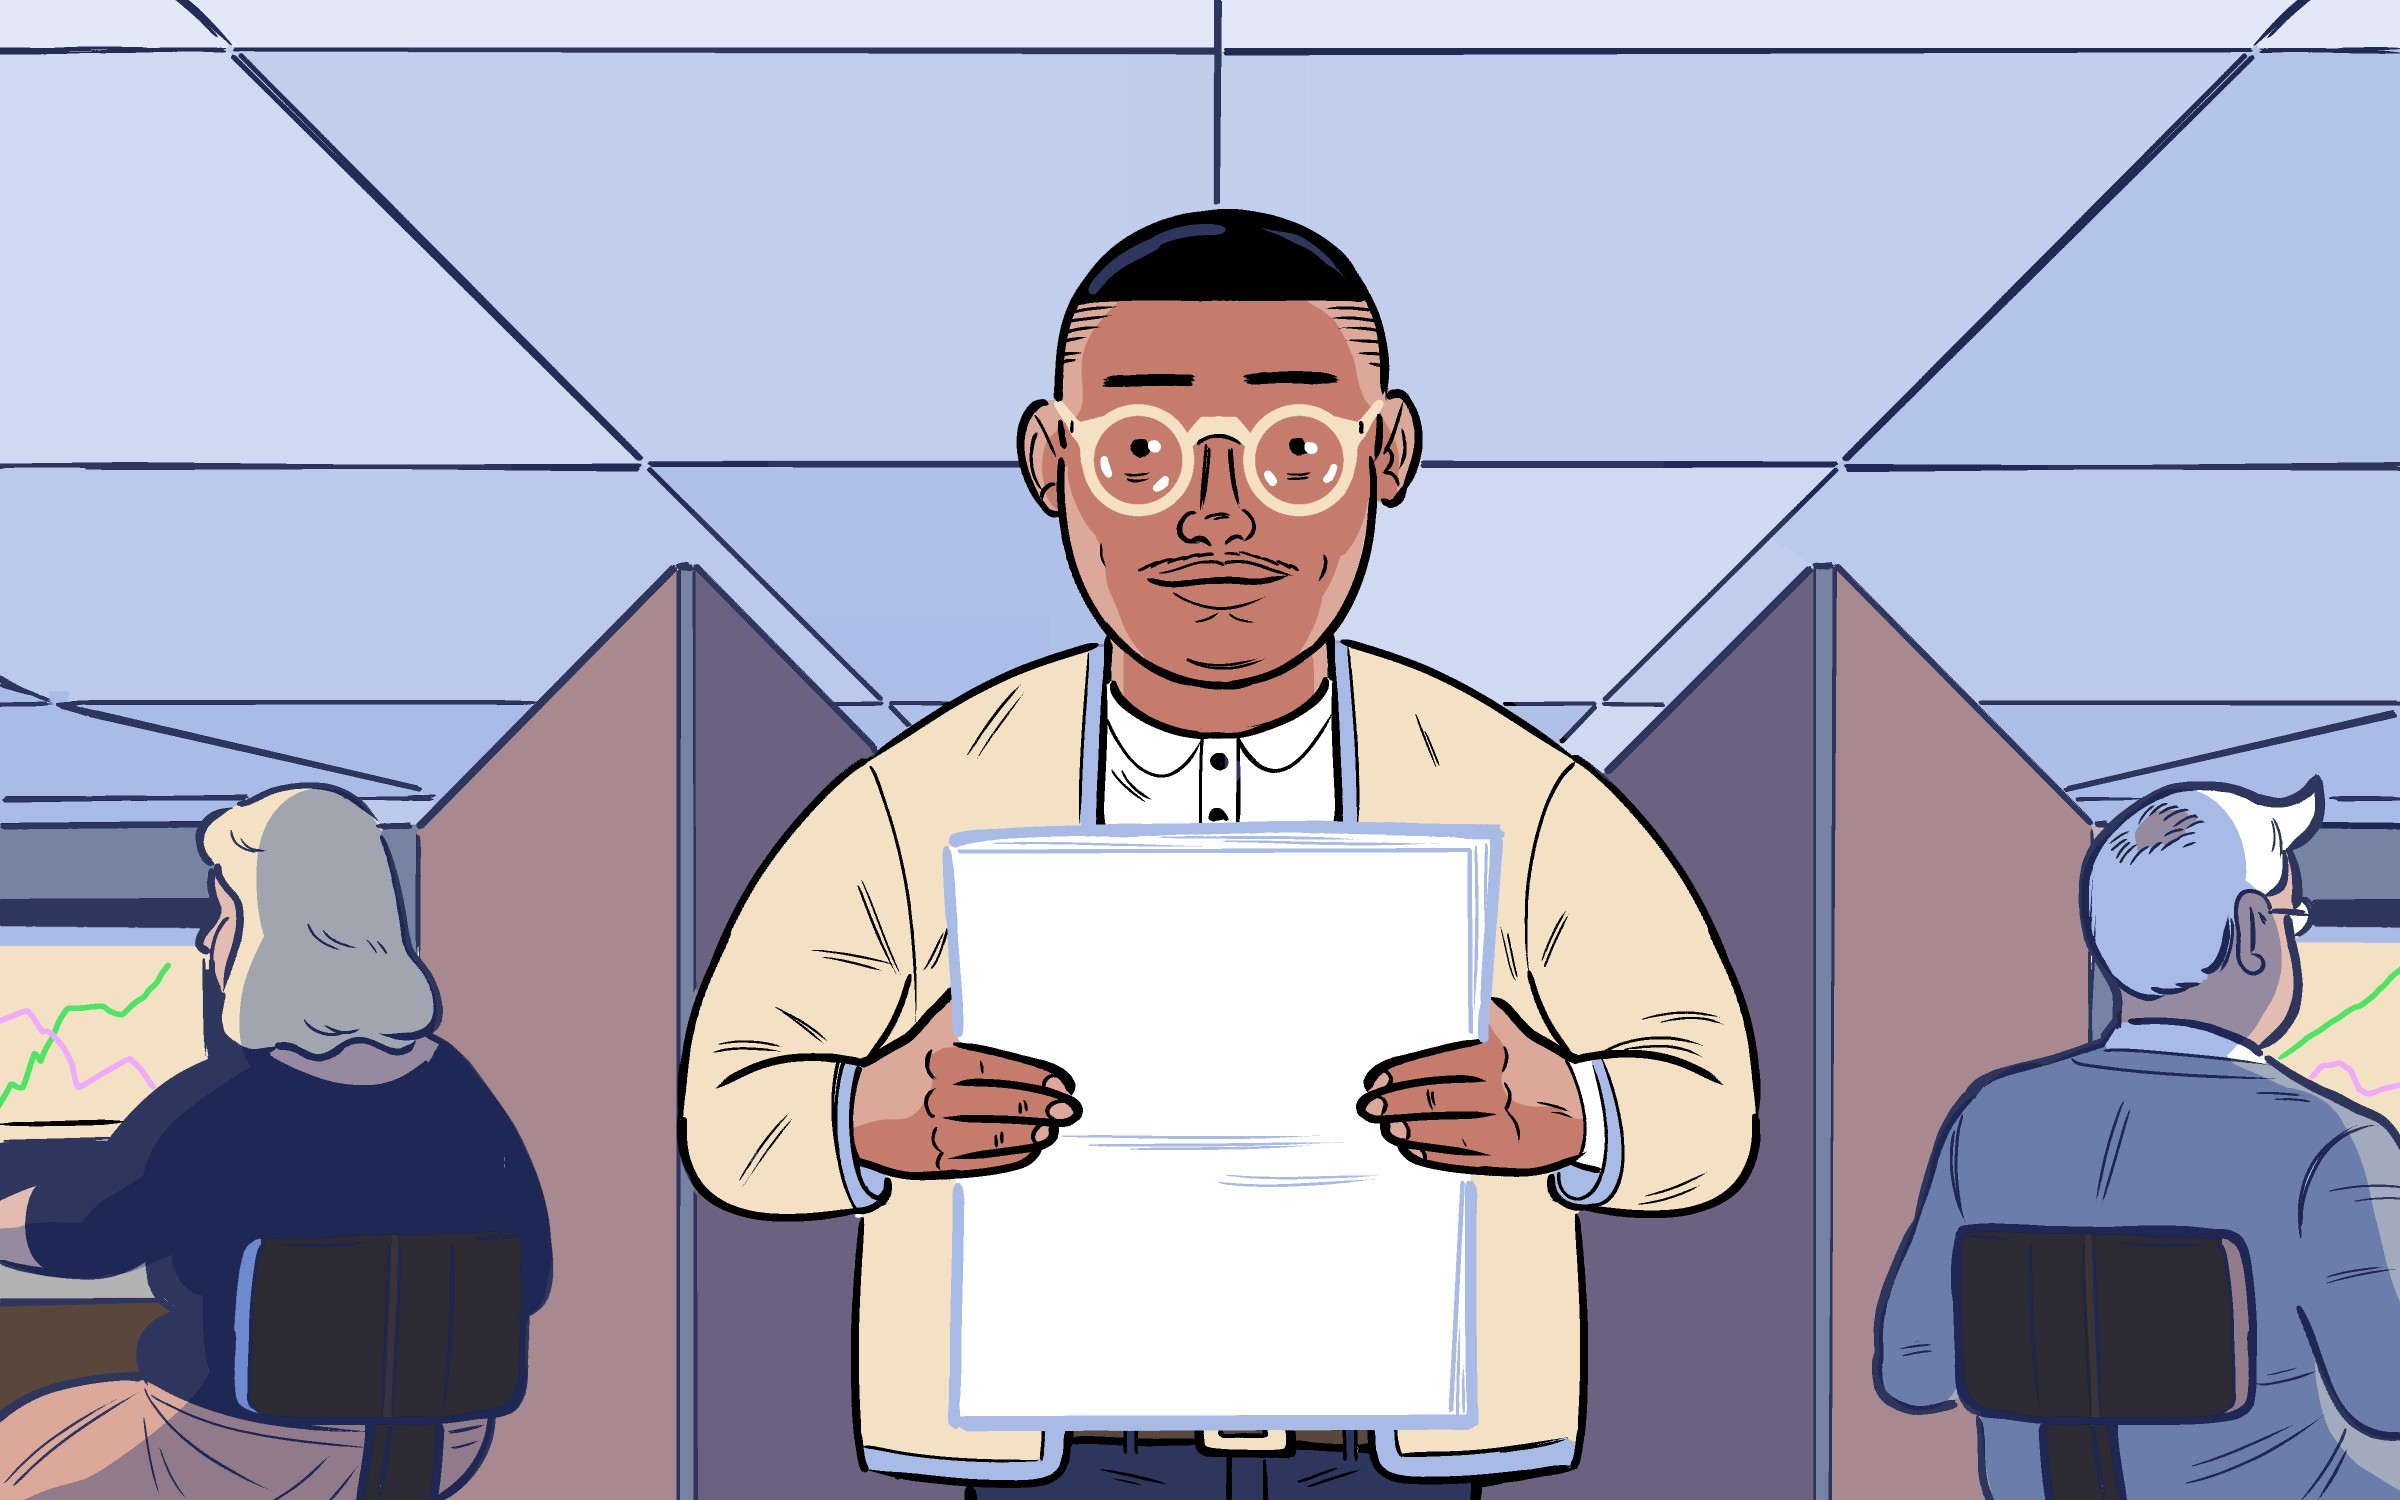 A custom illustration of a Black male office worker, wearing glasses and holding a stack of papers, standing in front of 3 cubicles. In the cubicles behind him are his white coworkers.